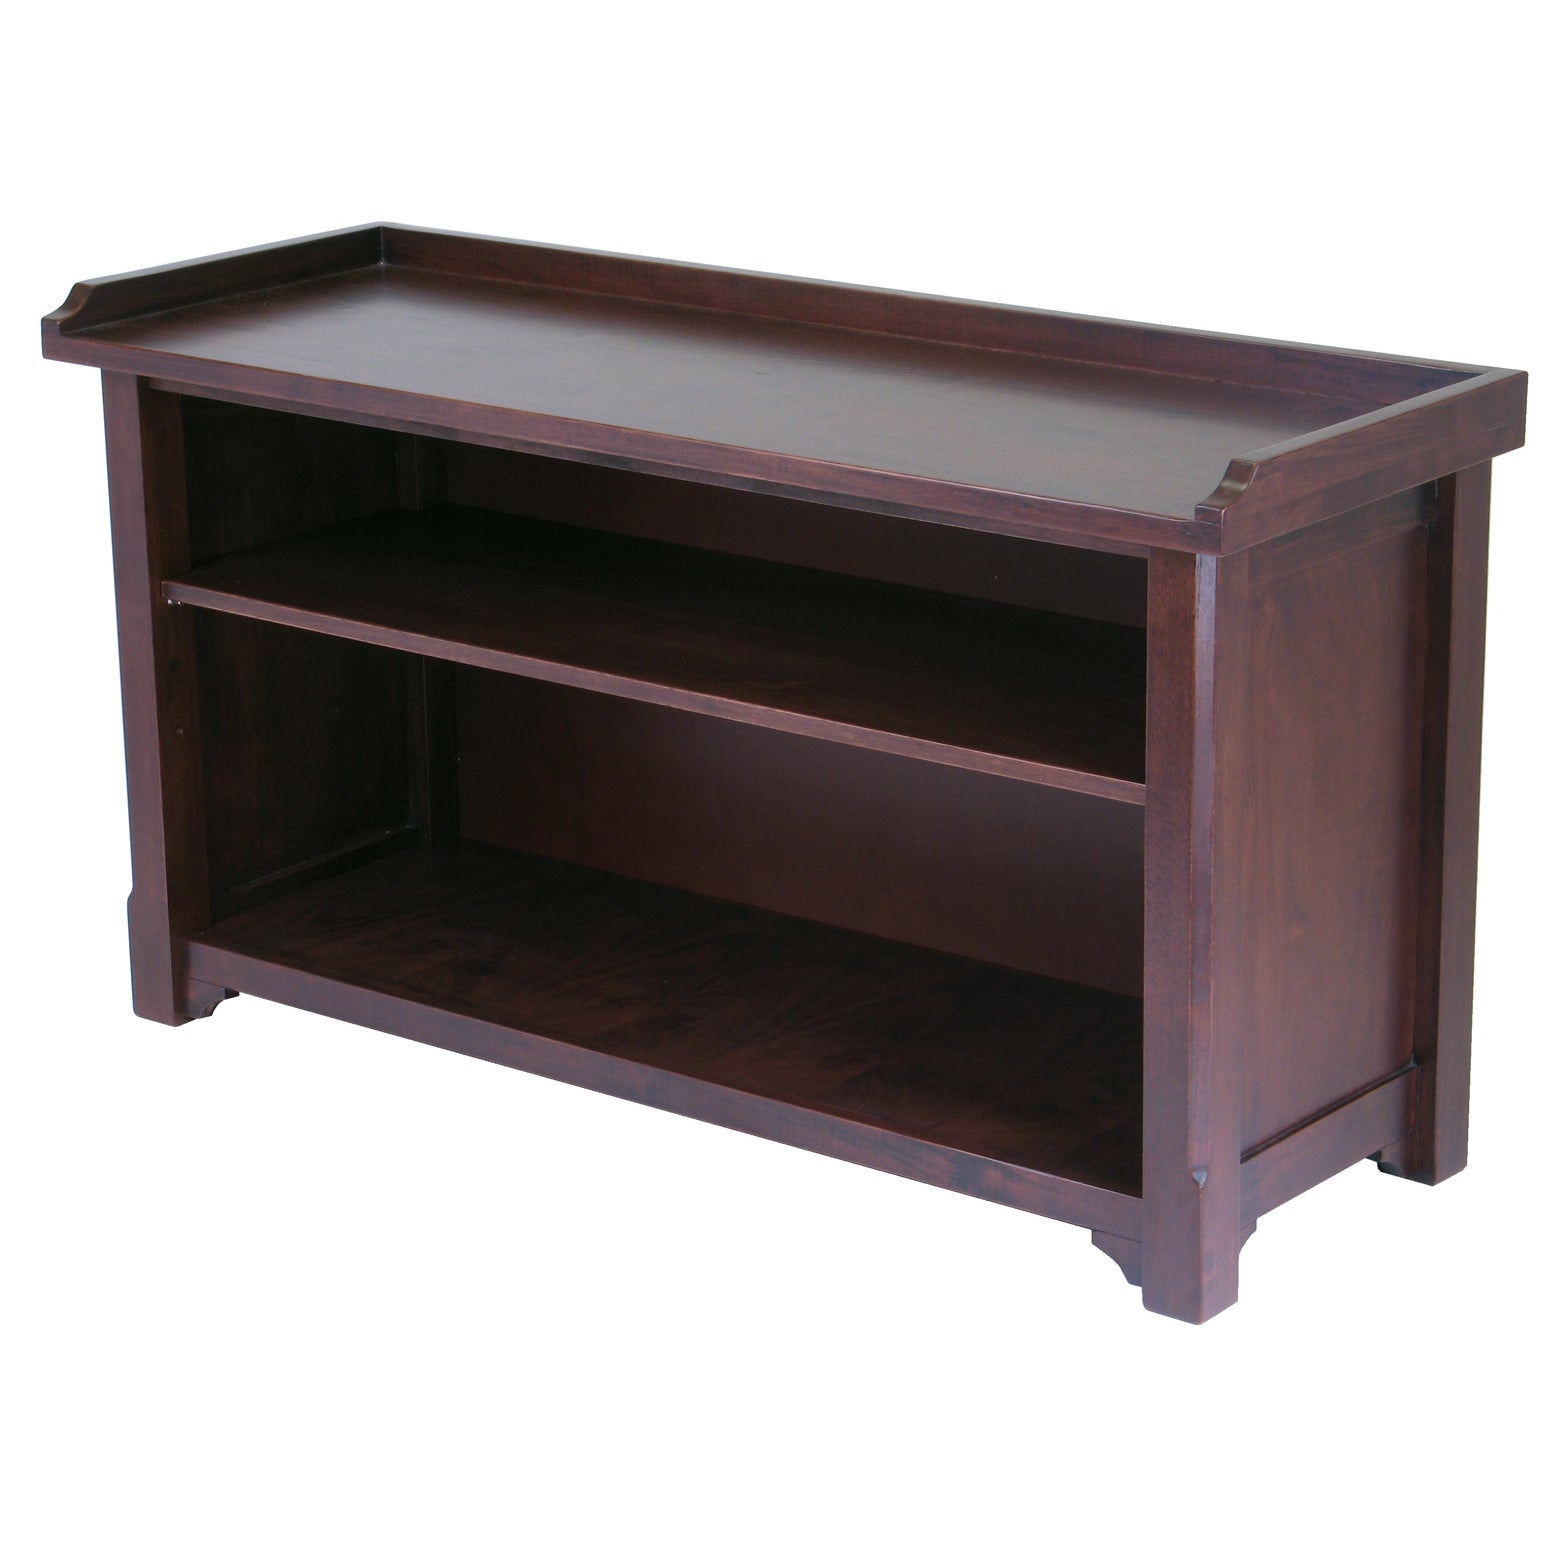 Winsome Milan Home Indoor Entryway Bench with Storage She...